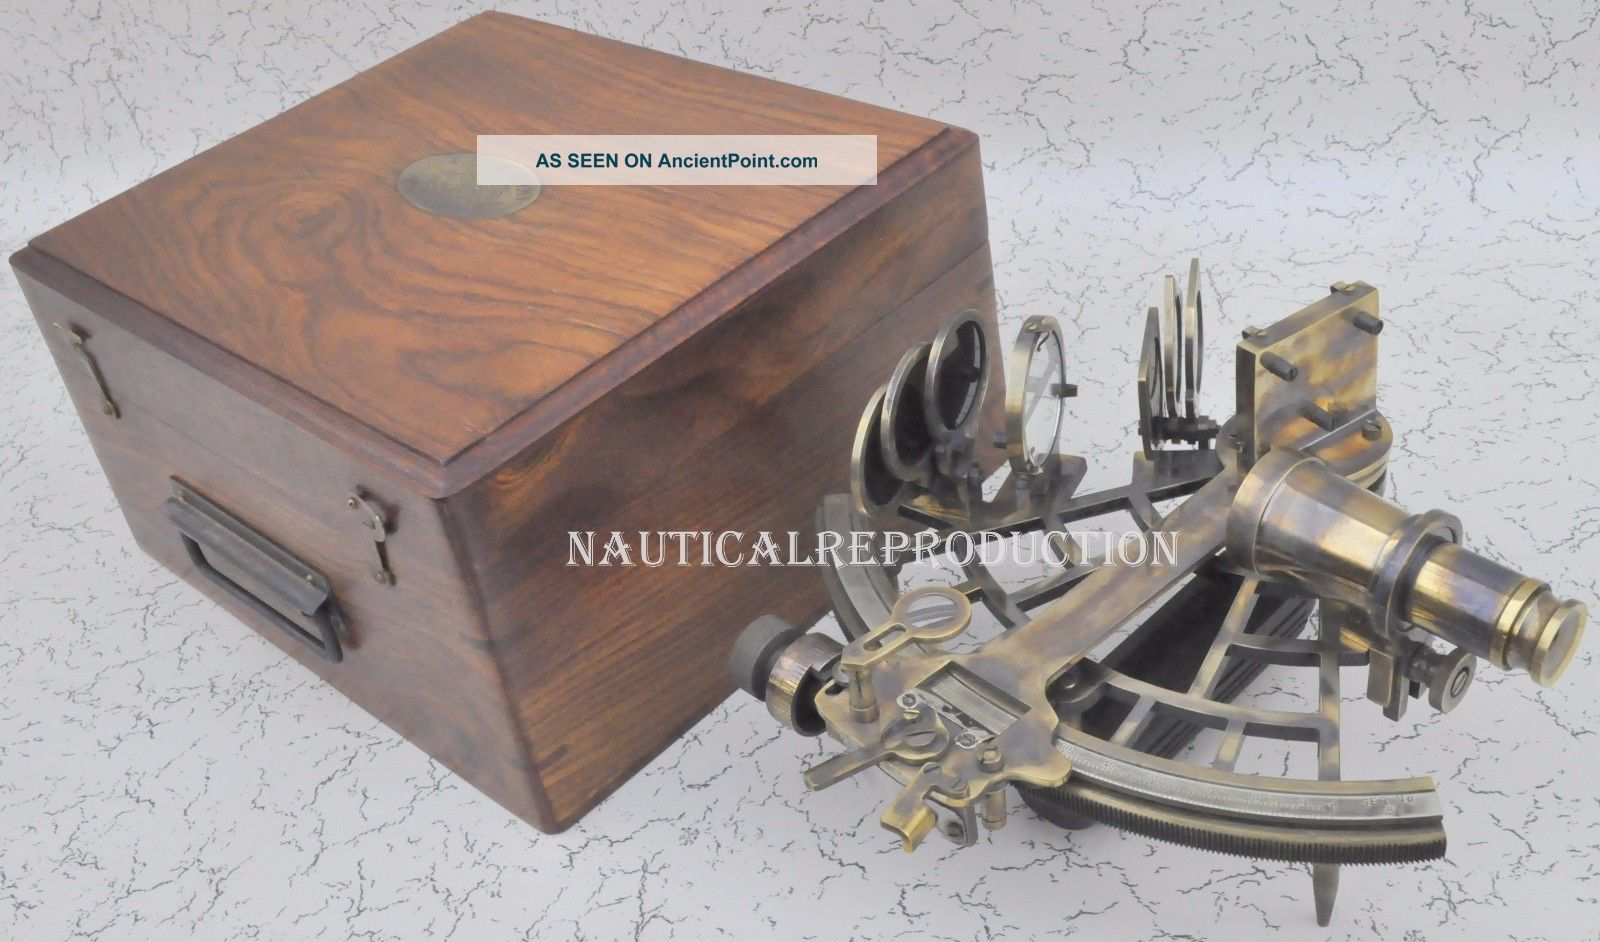 100 Nautical Reproduction Micrometer Drum Readout Brass Sextant Sextants photo